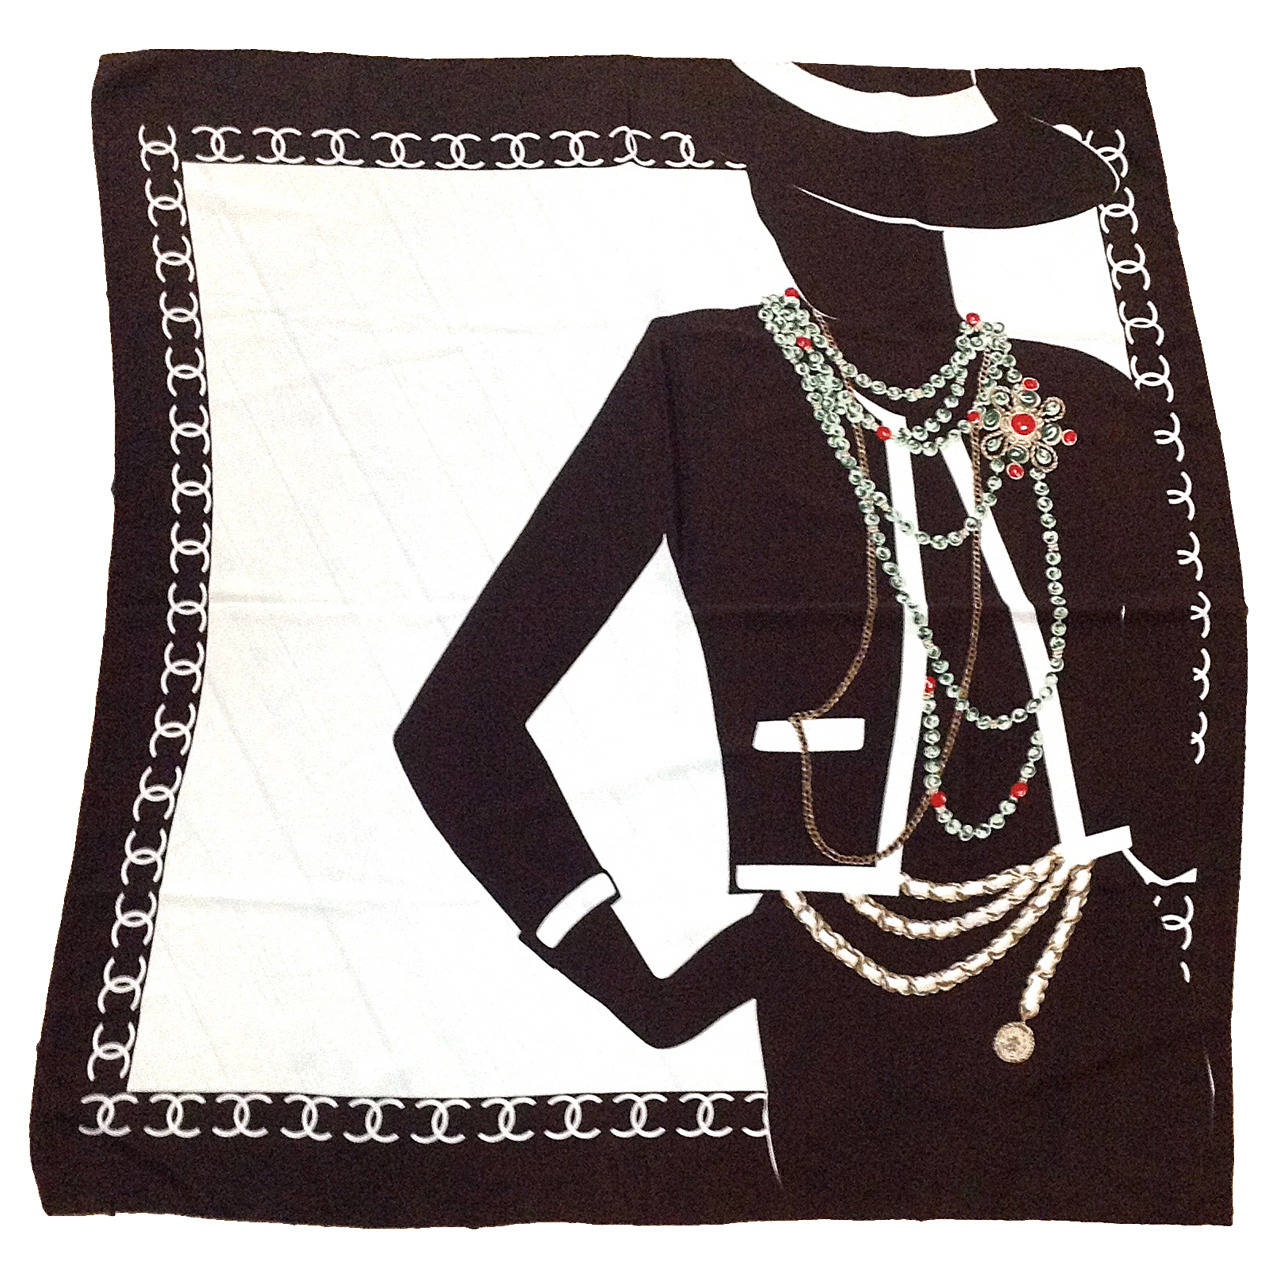 1990s Chanel Silk Scarf Brown And White With Coco Chanel